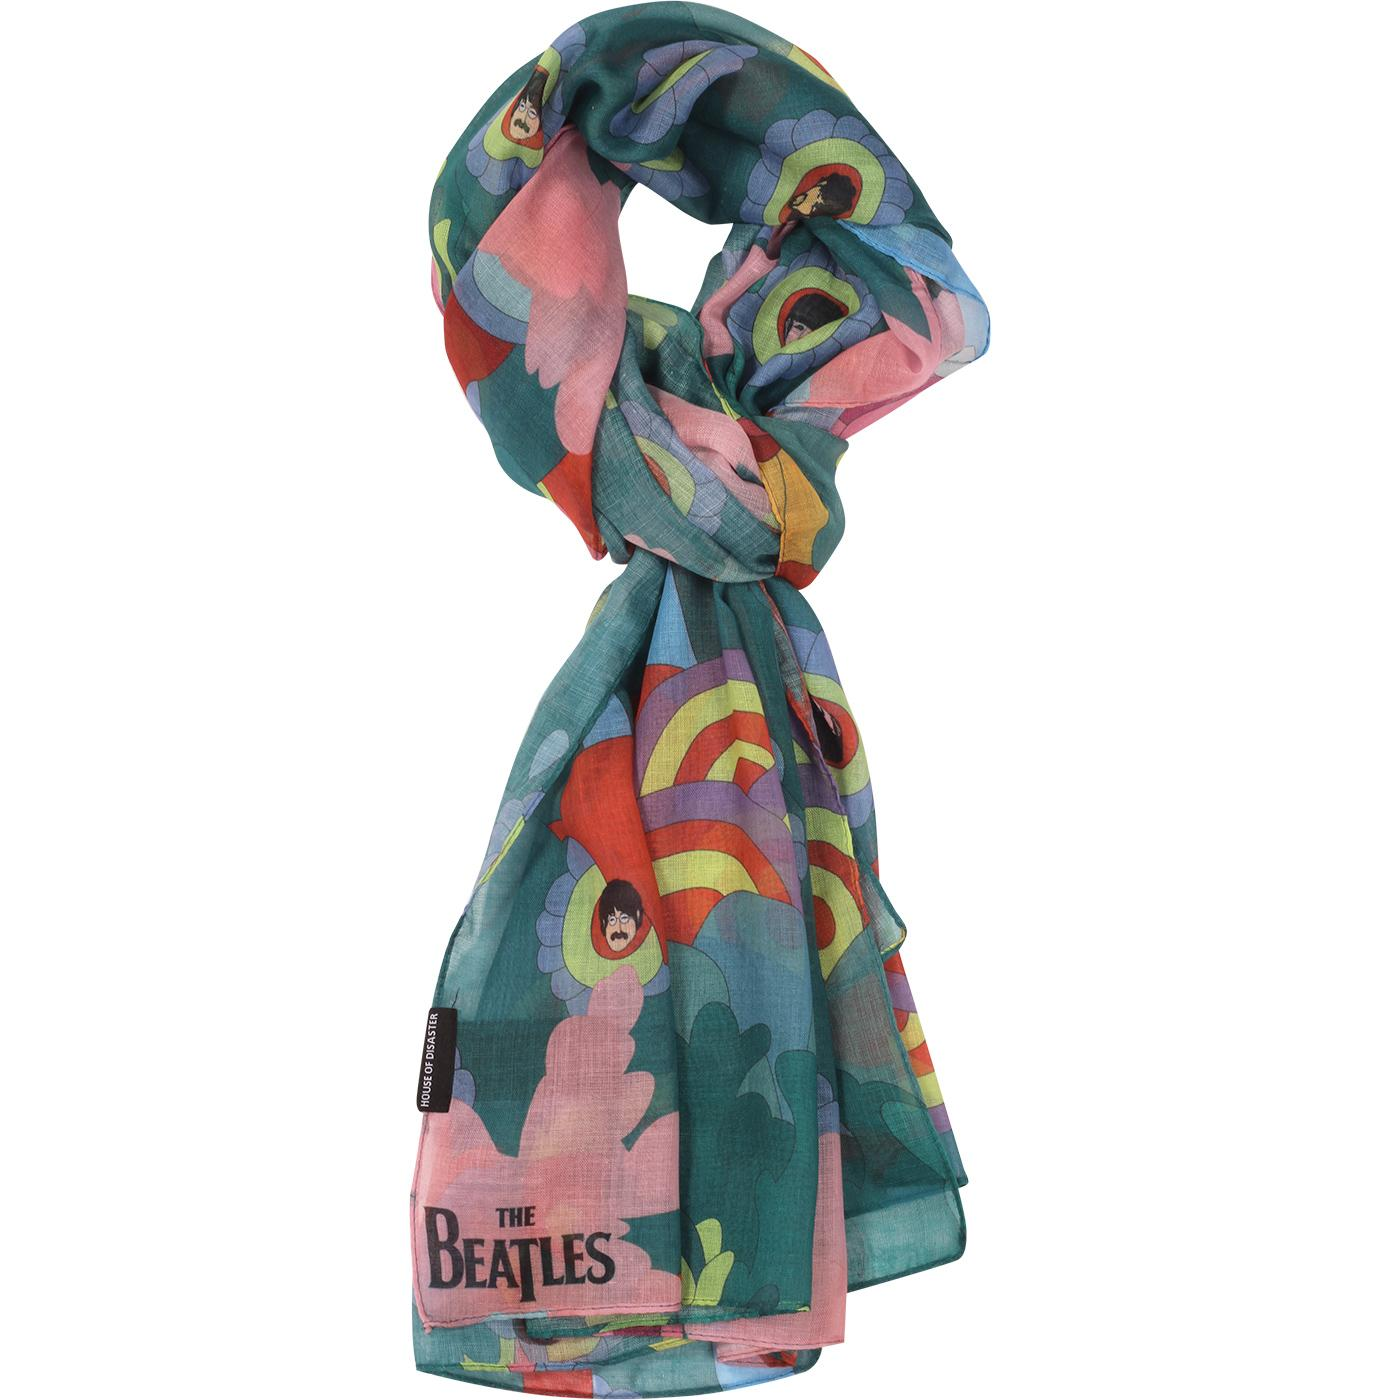 DISASTER DESIGN Yellow Submarine Psychedelic Scarf